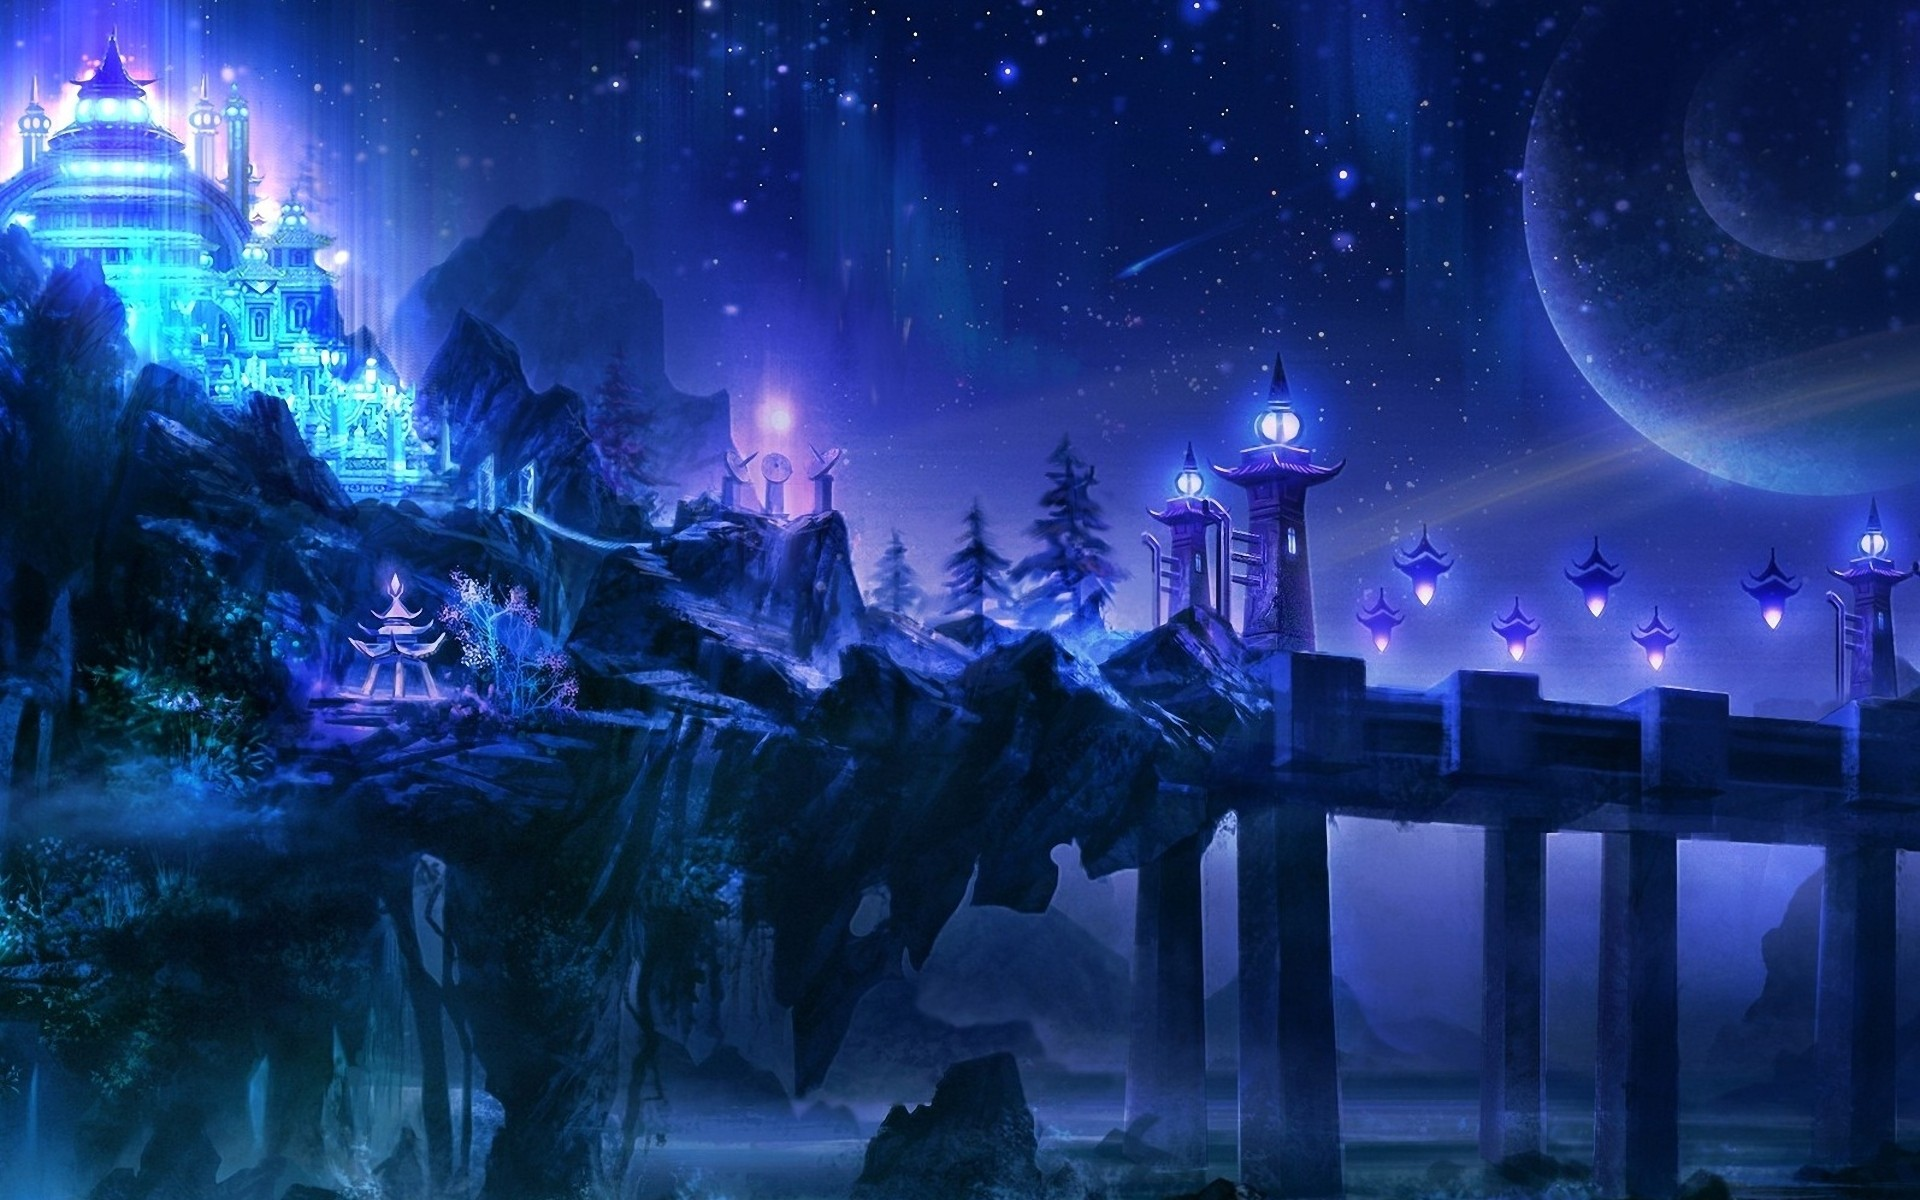 fantasy-landscapes-castles-night-purple-fantasy-art-magic-1920x1200-hd-wallpaper.jpg